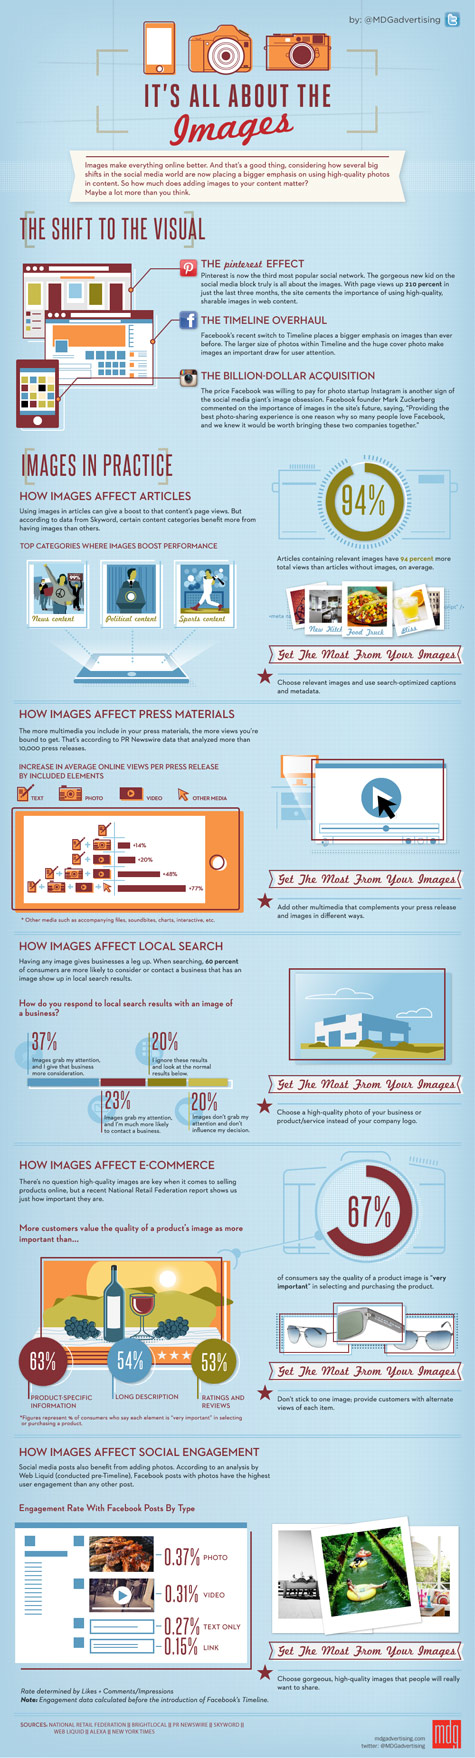 Infographic about why images are so important online